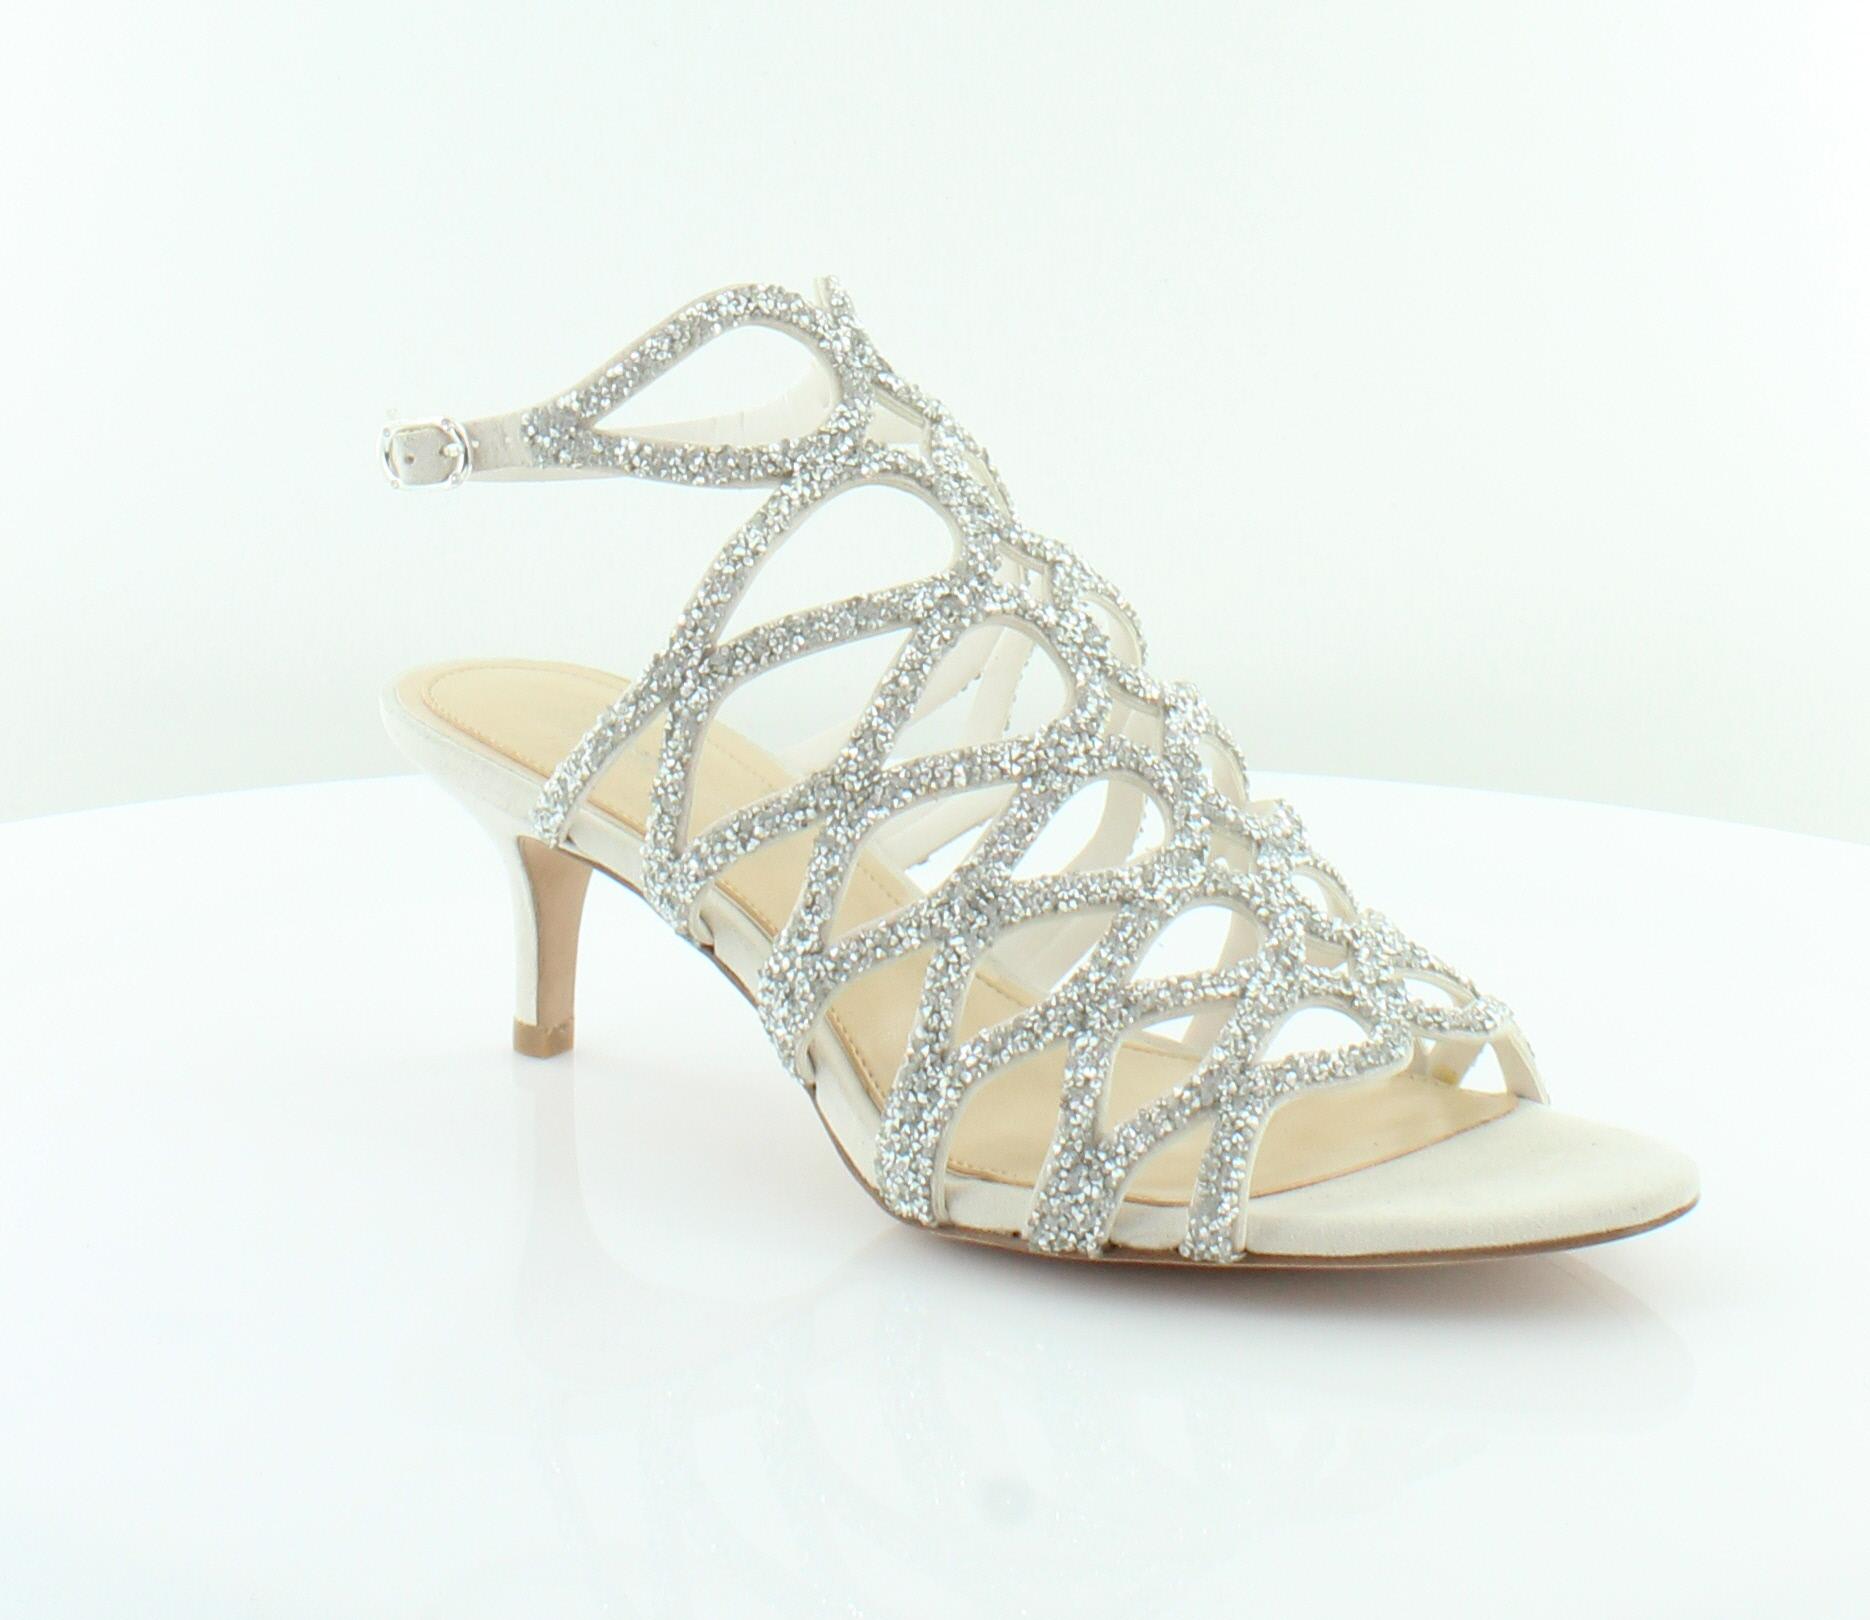 b206c665ad63 Imagine Vince Camuto Kami Silver Womens Shoes Size 9.5 M Sandals ...